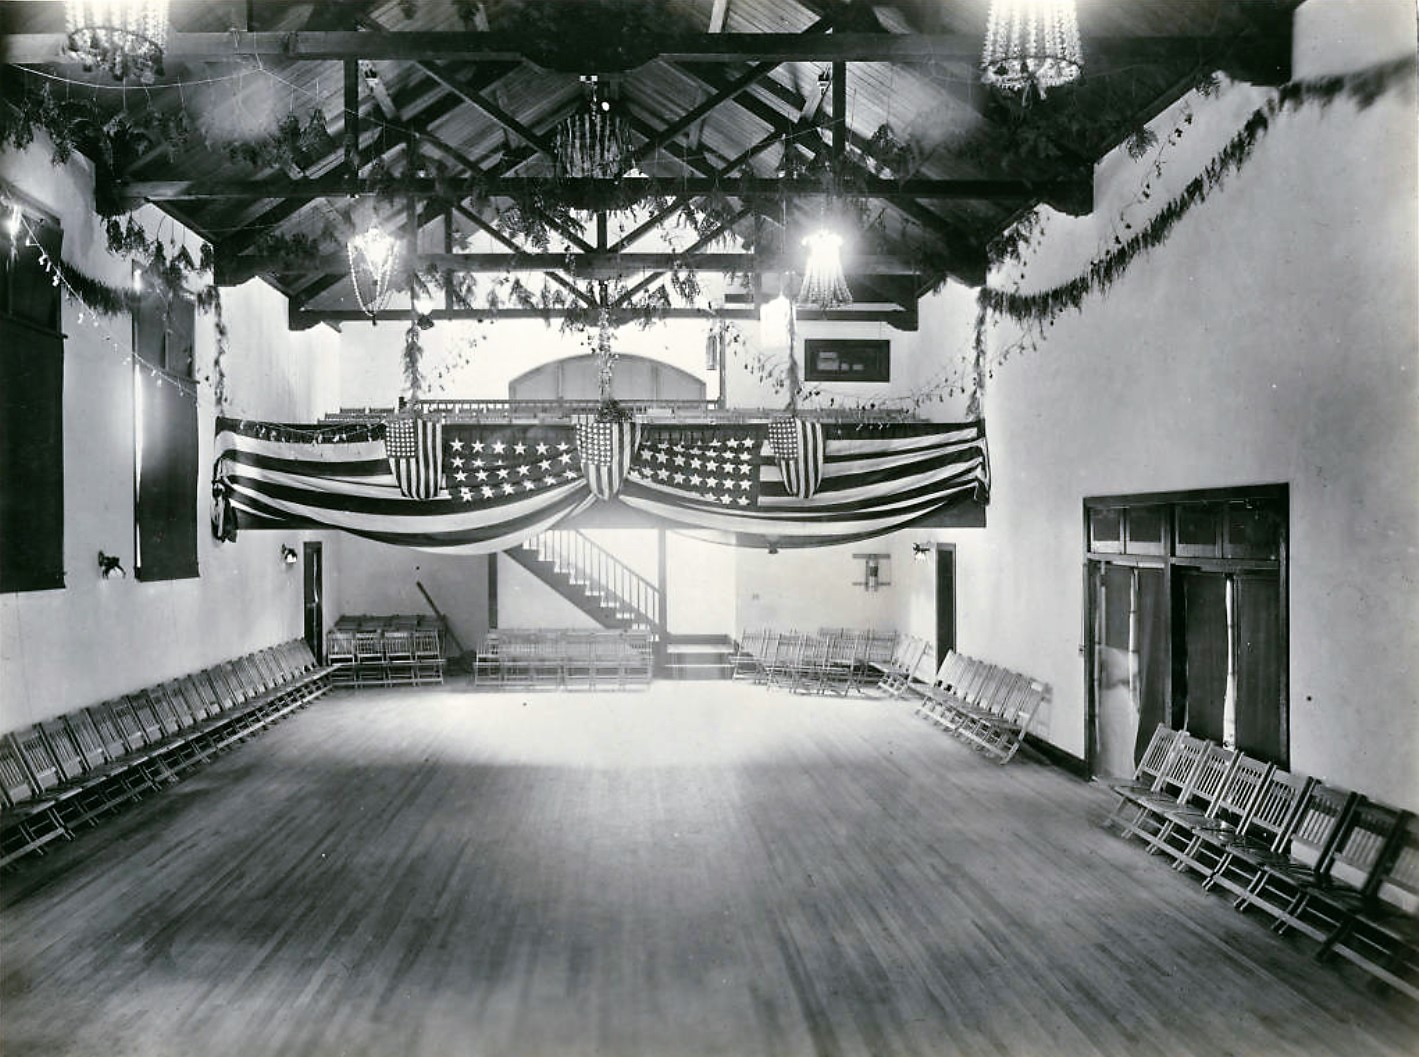 San Quentin social hall in 1919 shows flags and garland.